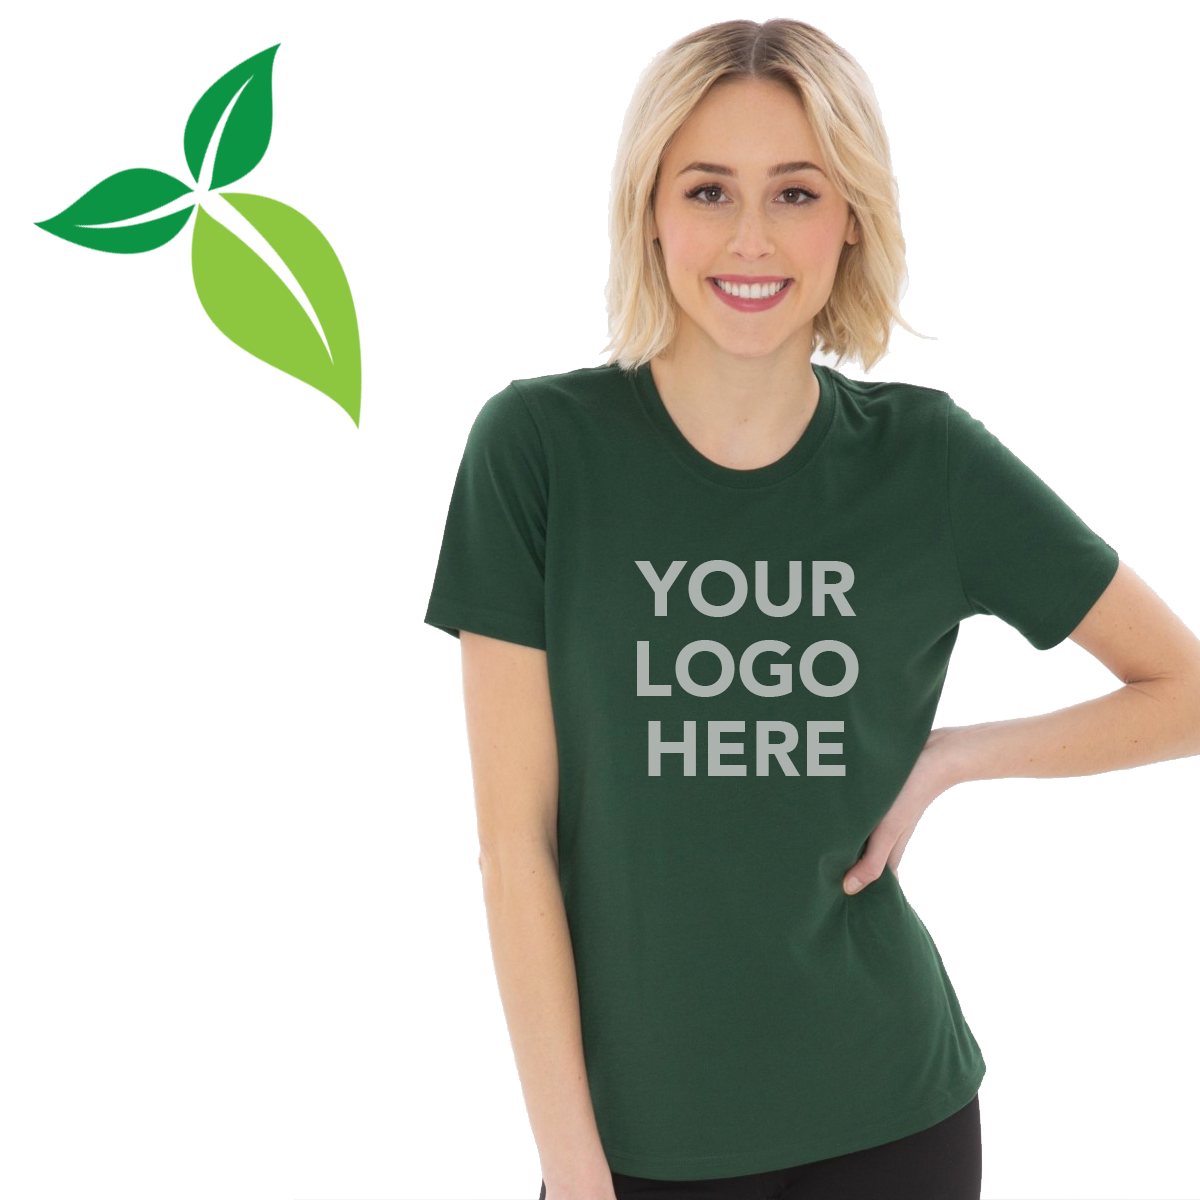 Enviro-Friendly T-Shirts